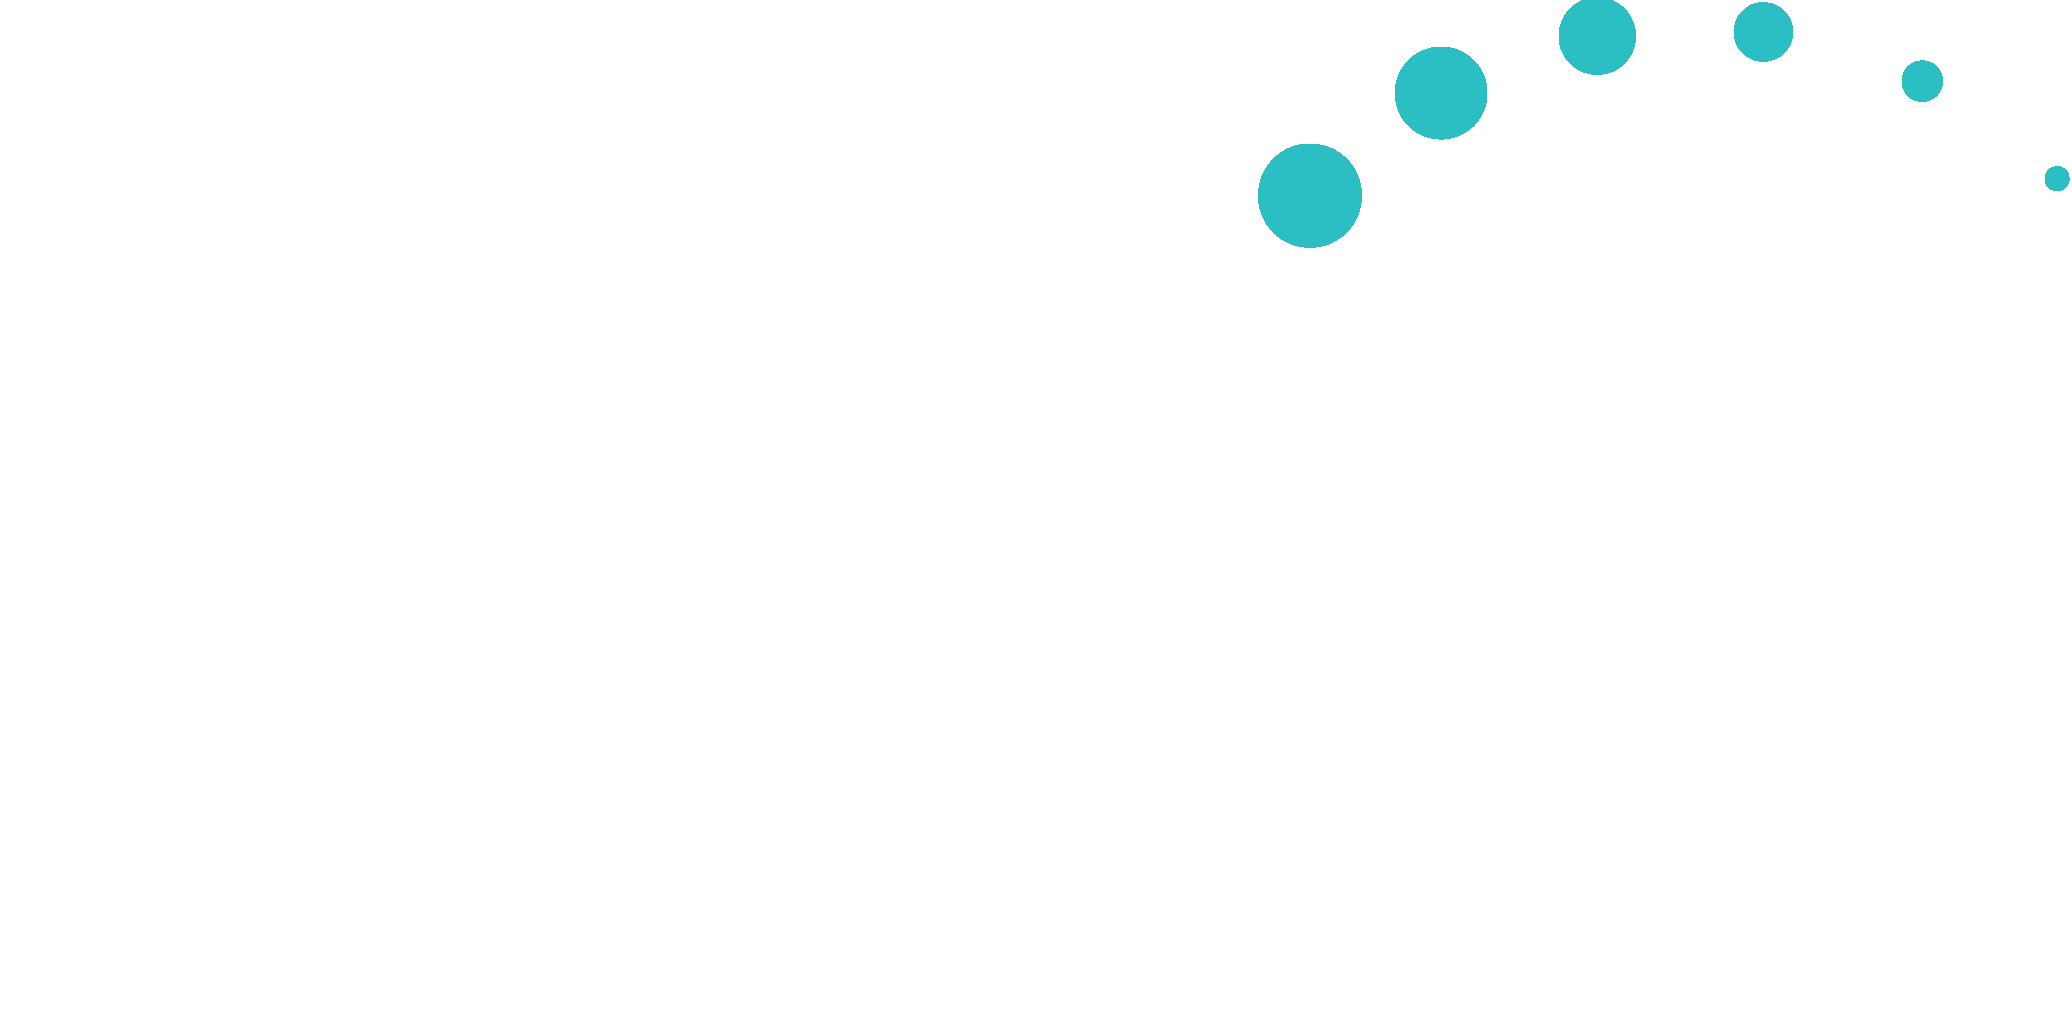 Portside Real Estate Group company logo